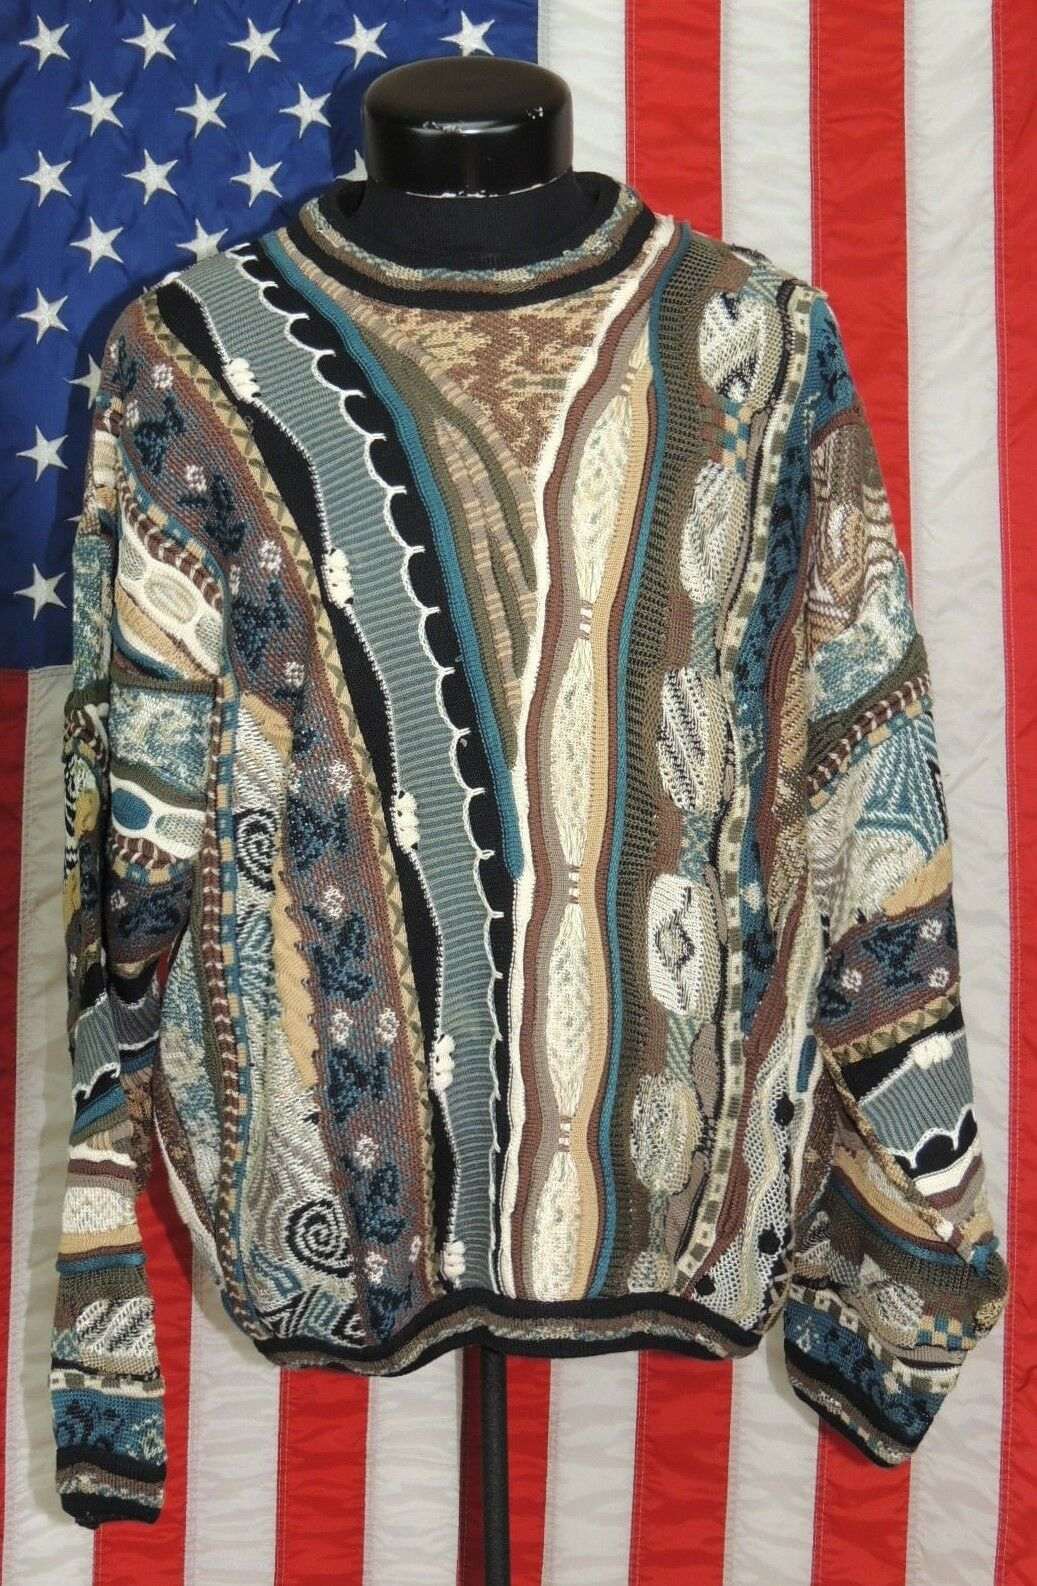 VTG Tundra Canada 3D Bill Cosby Biggie Smalls LG Abstract Sweater Hip-Hop Ugly